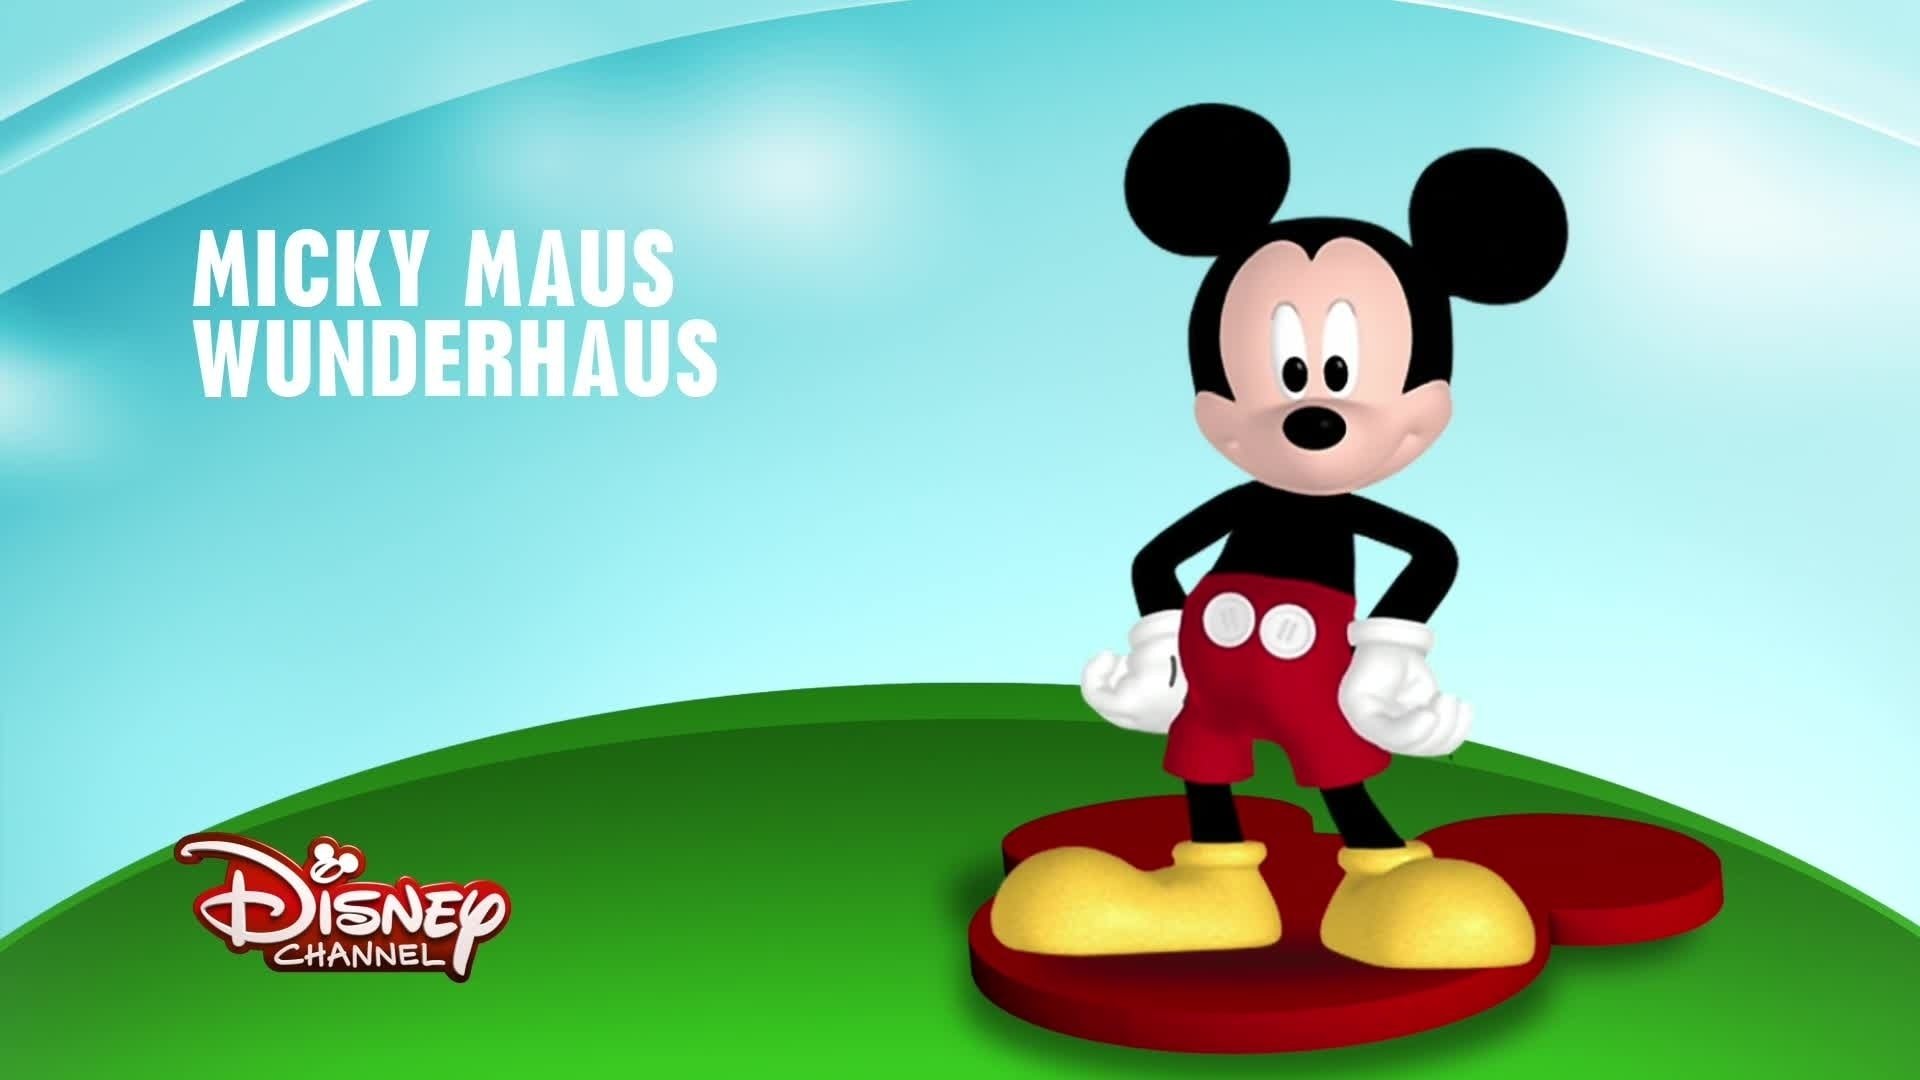 micky maus wunderhaus clip 94 micky freunde disney videos germany. Black Bedroom Furniture Sets. Home Design Ideas